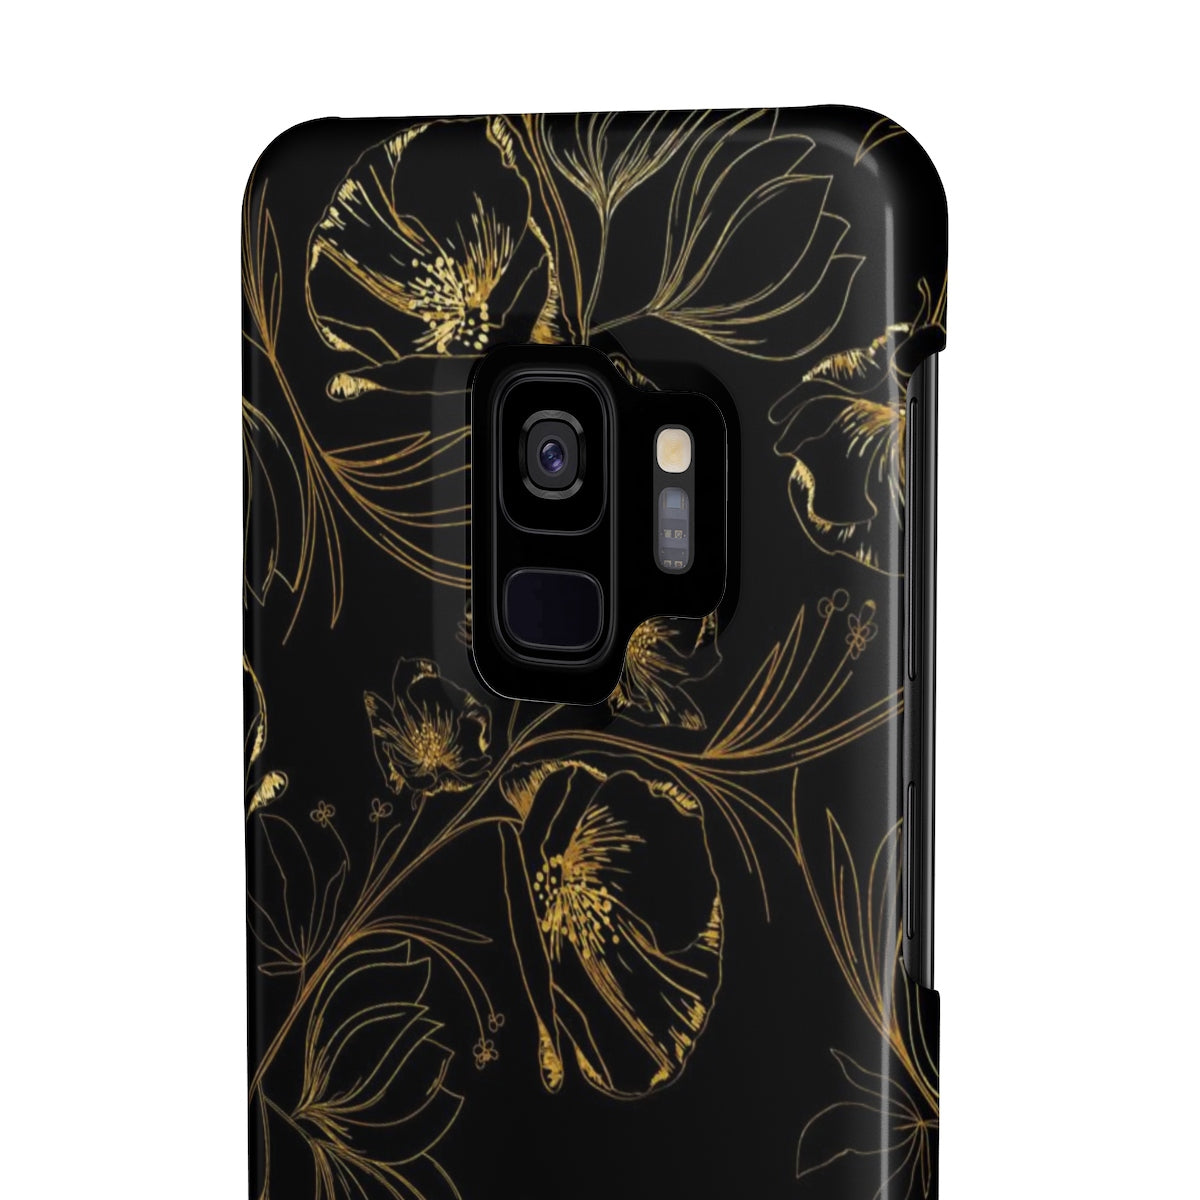 Ansley Park Black Sleek and Chic Phone Case